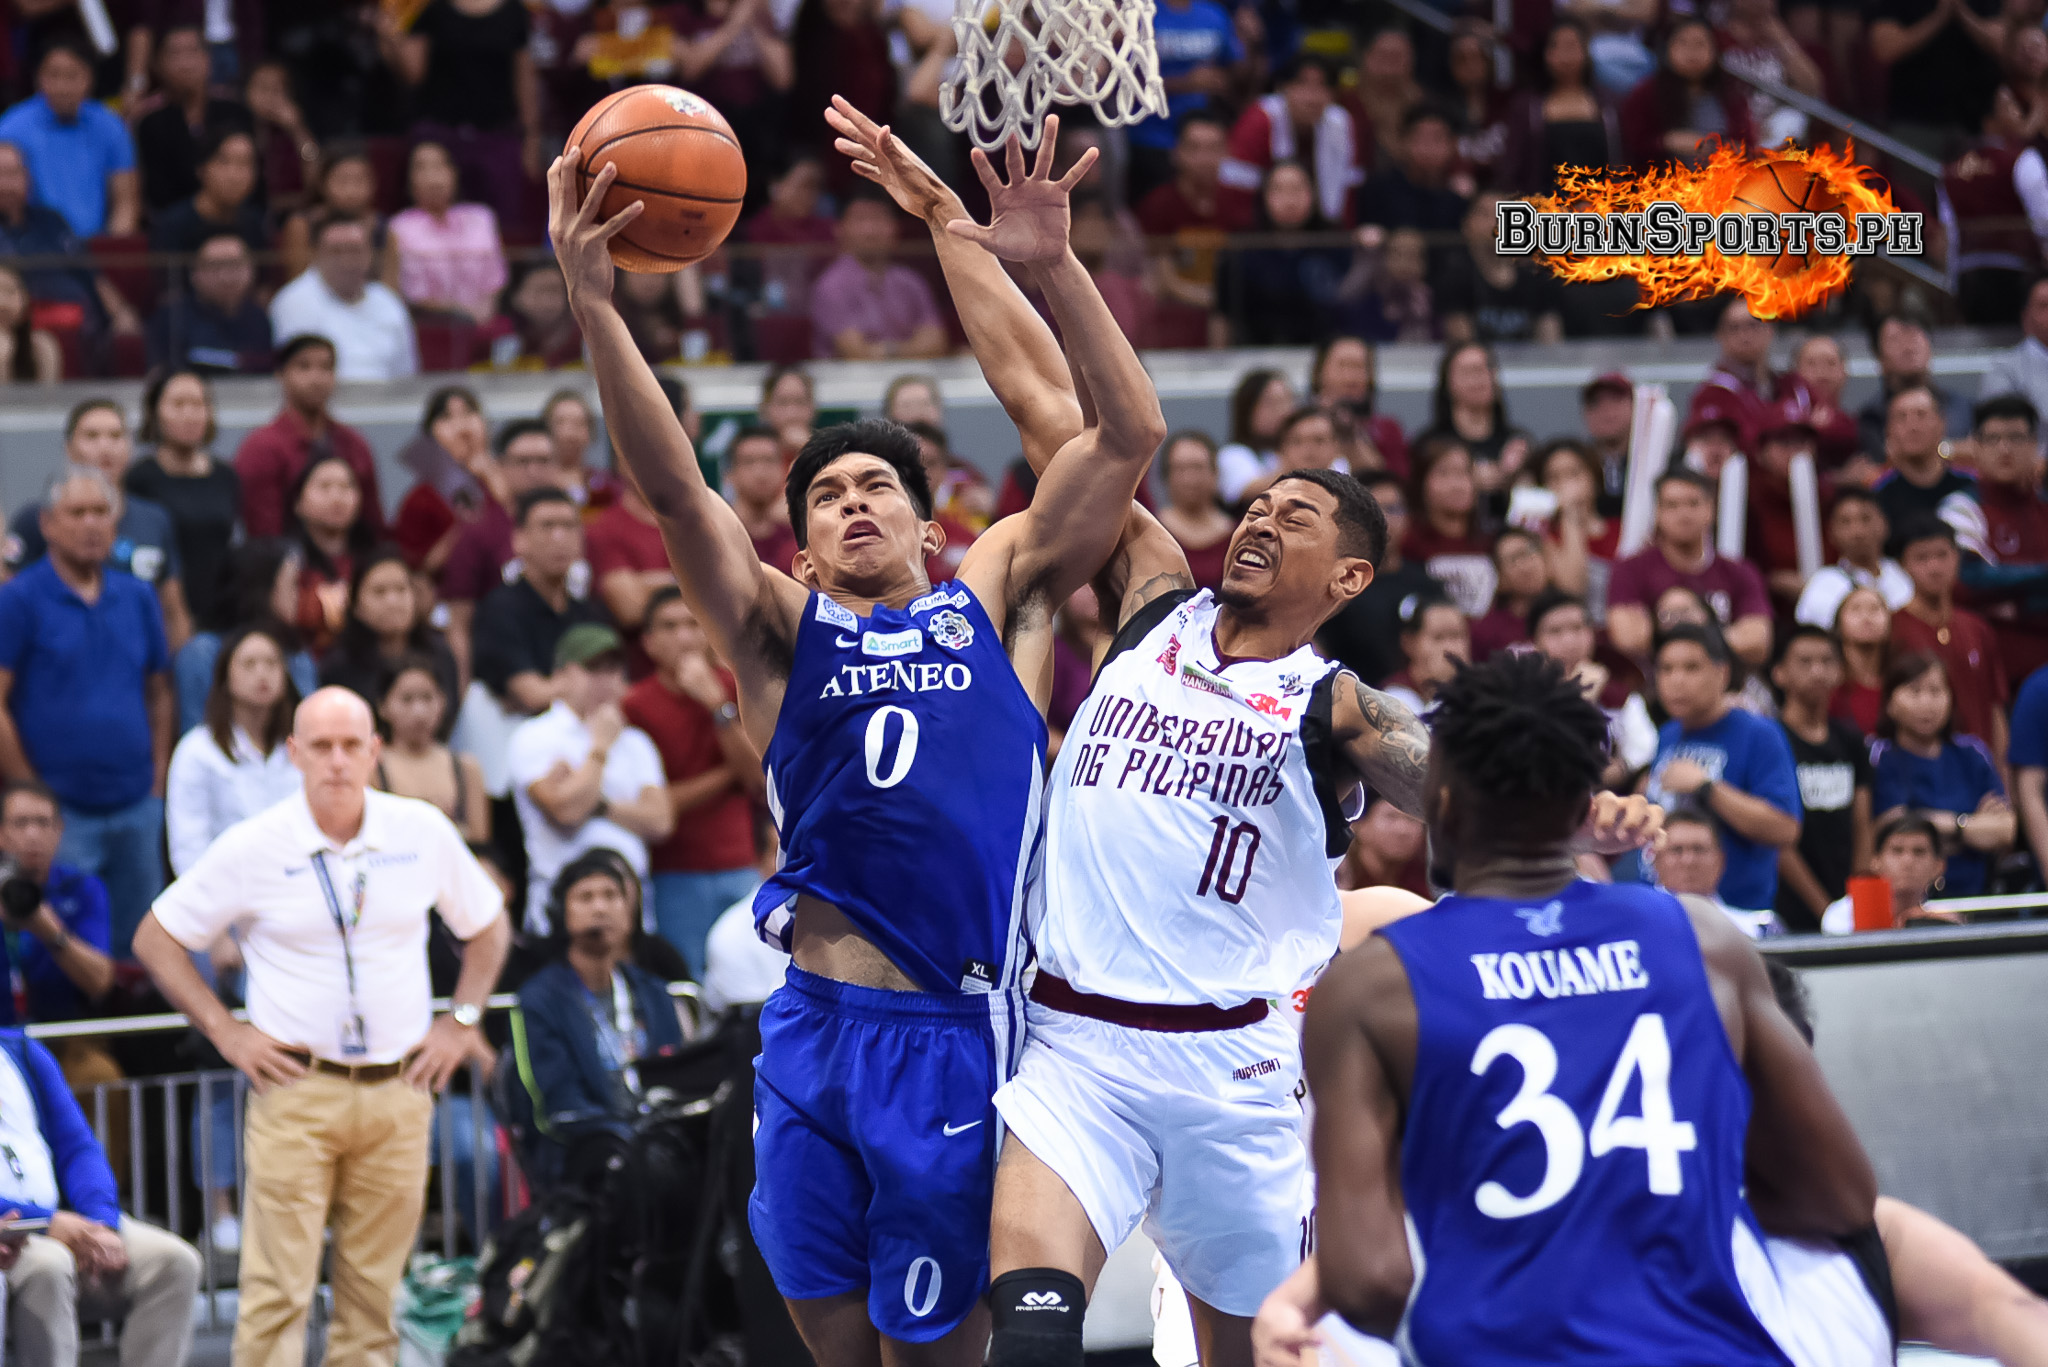 UAAP Season 82 Basketball schedule to highlight Wednesday triple-headers